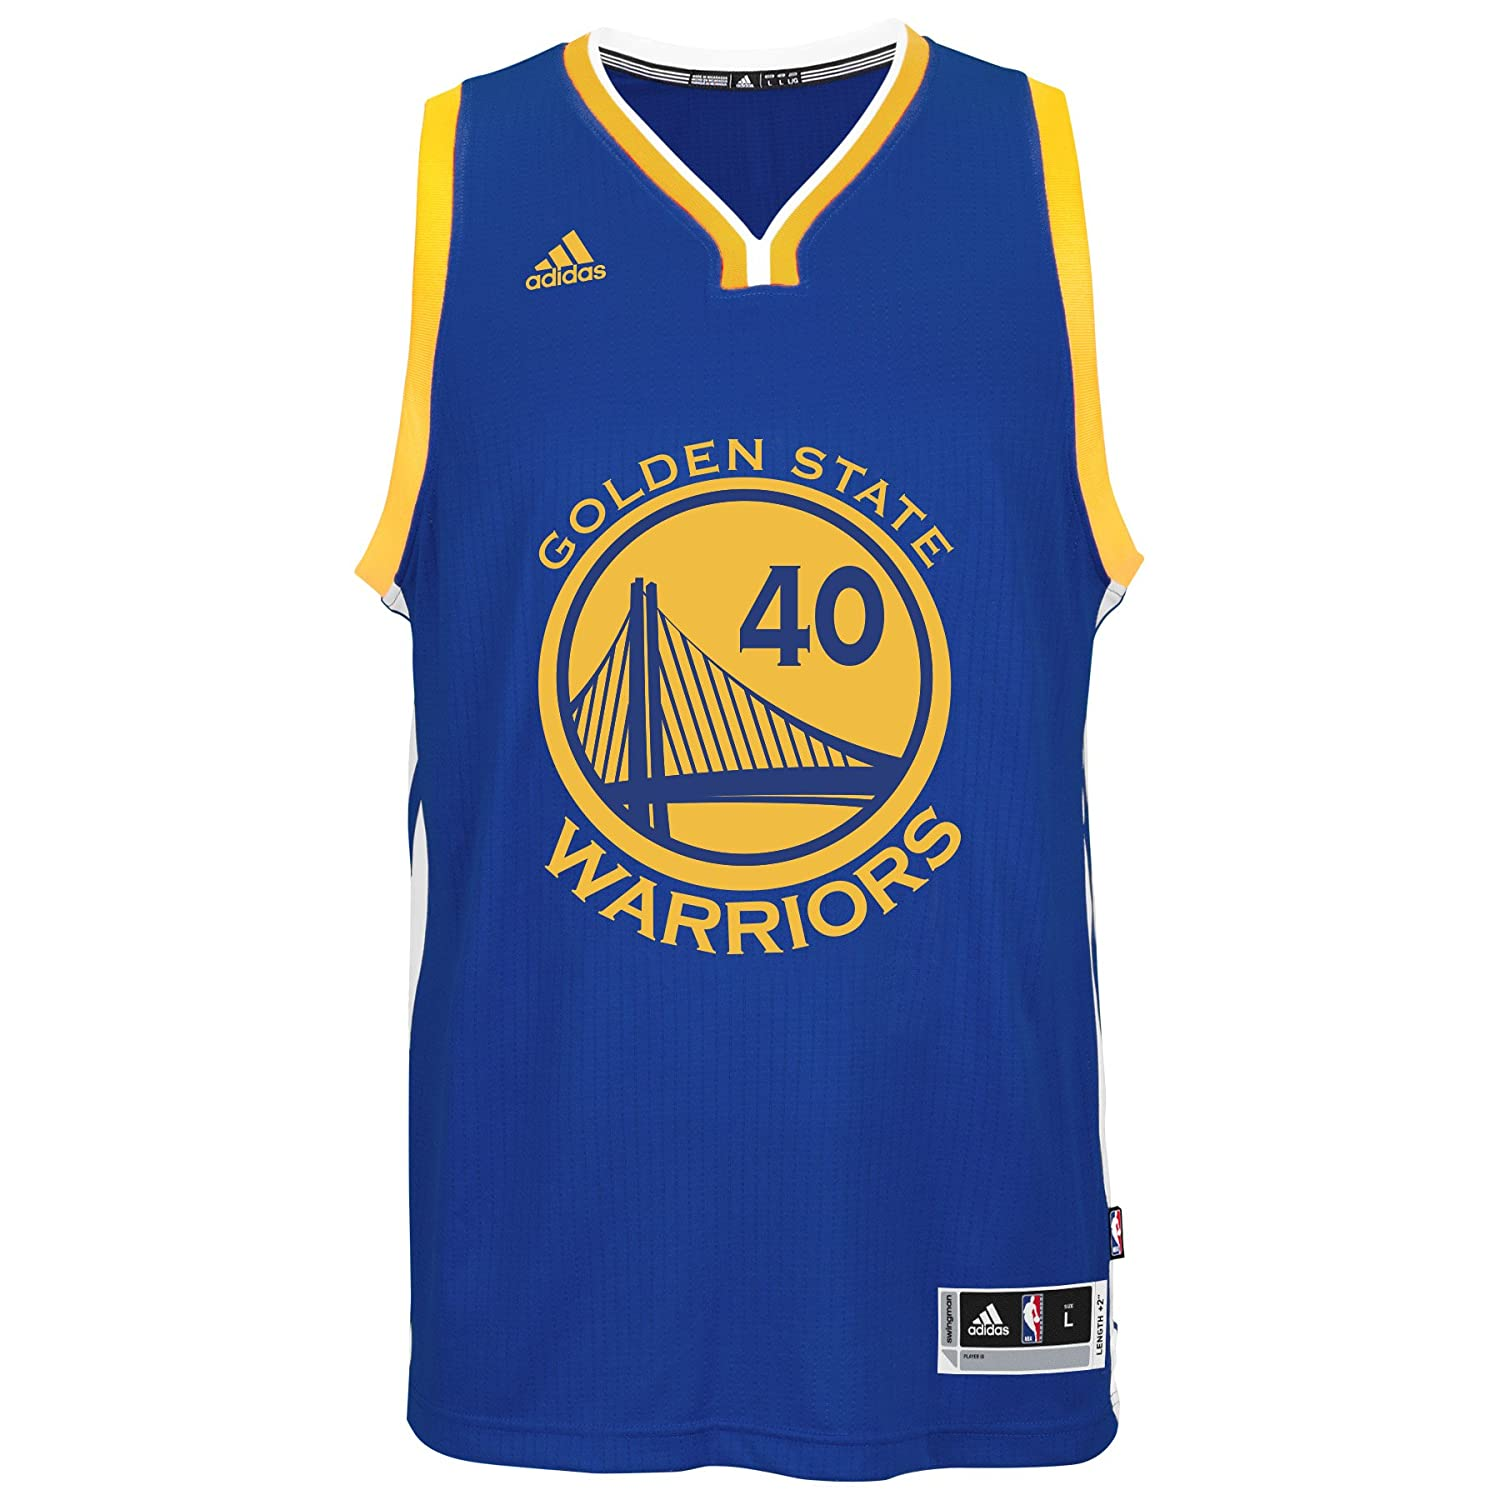 a90ecab11 Amazon.com   adidas Harrison Barnes Golden State Warriors NBA Men s Blue  Swingman Climacool Jersey   Sports   Outdoors